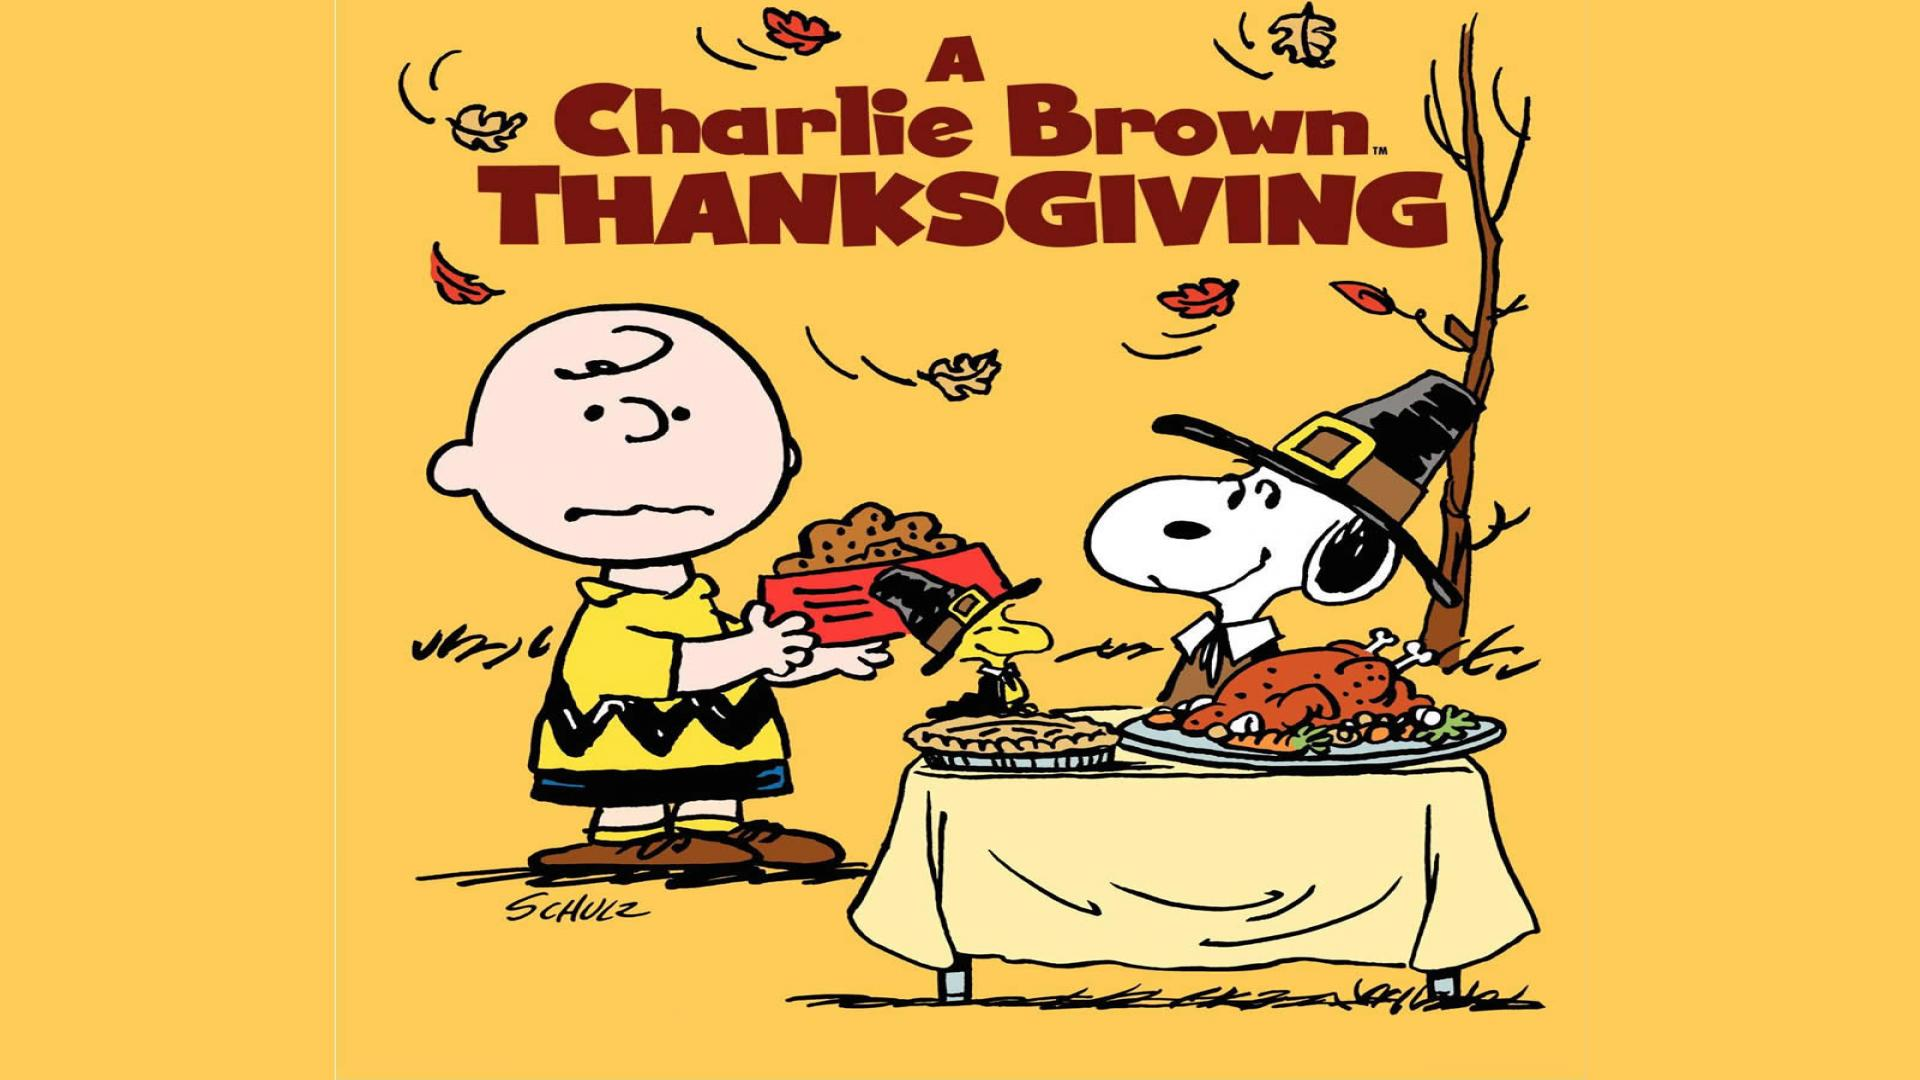 Charlie Brown Peanuts Thanksgiving Wallpaper   snoopy thanksgiving 1920x1080